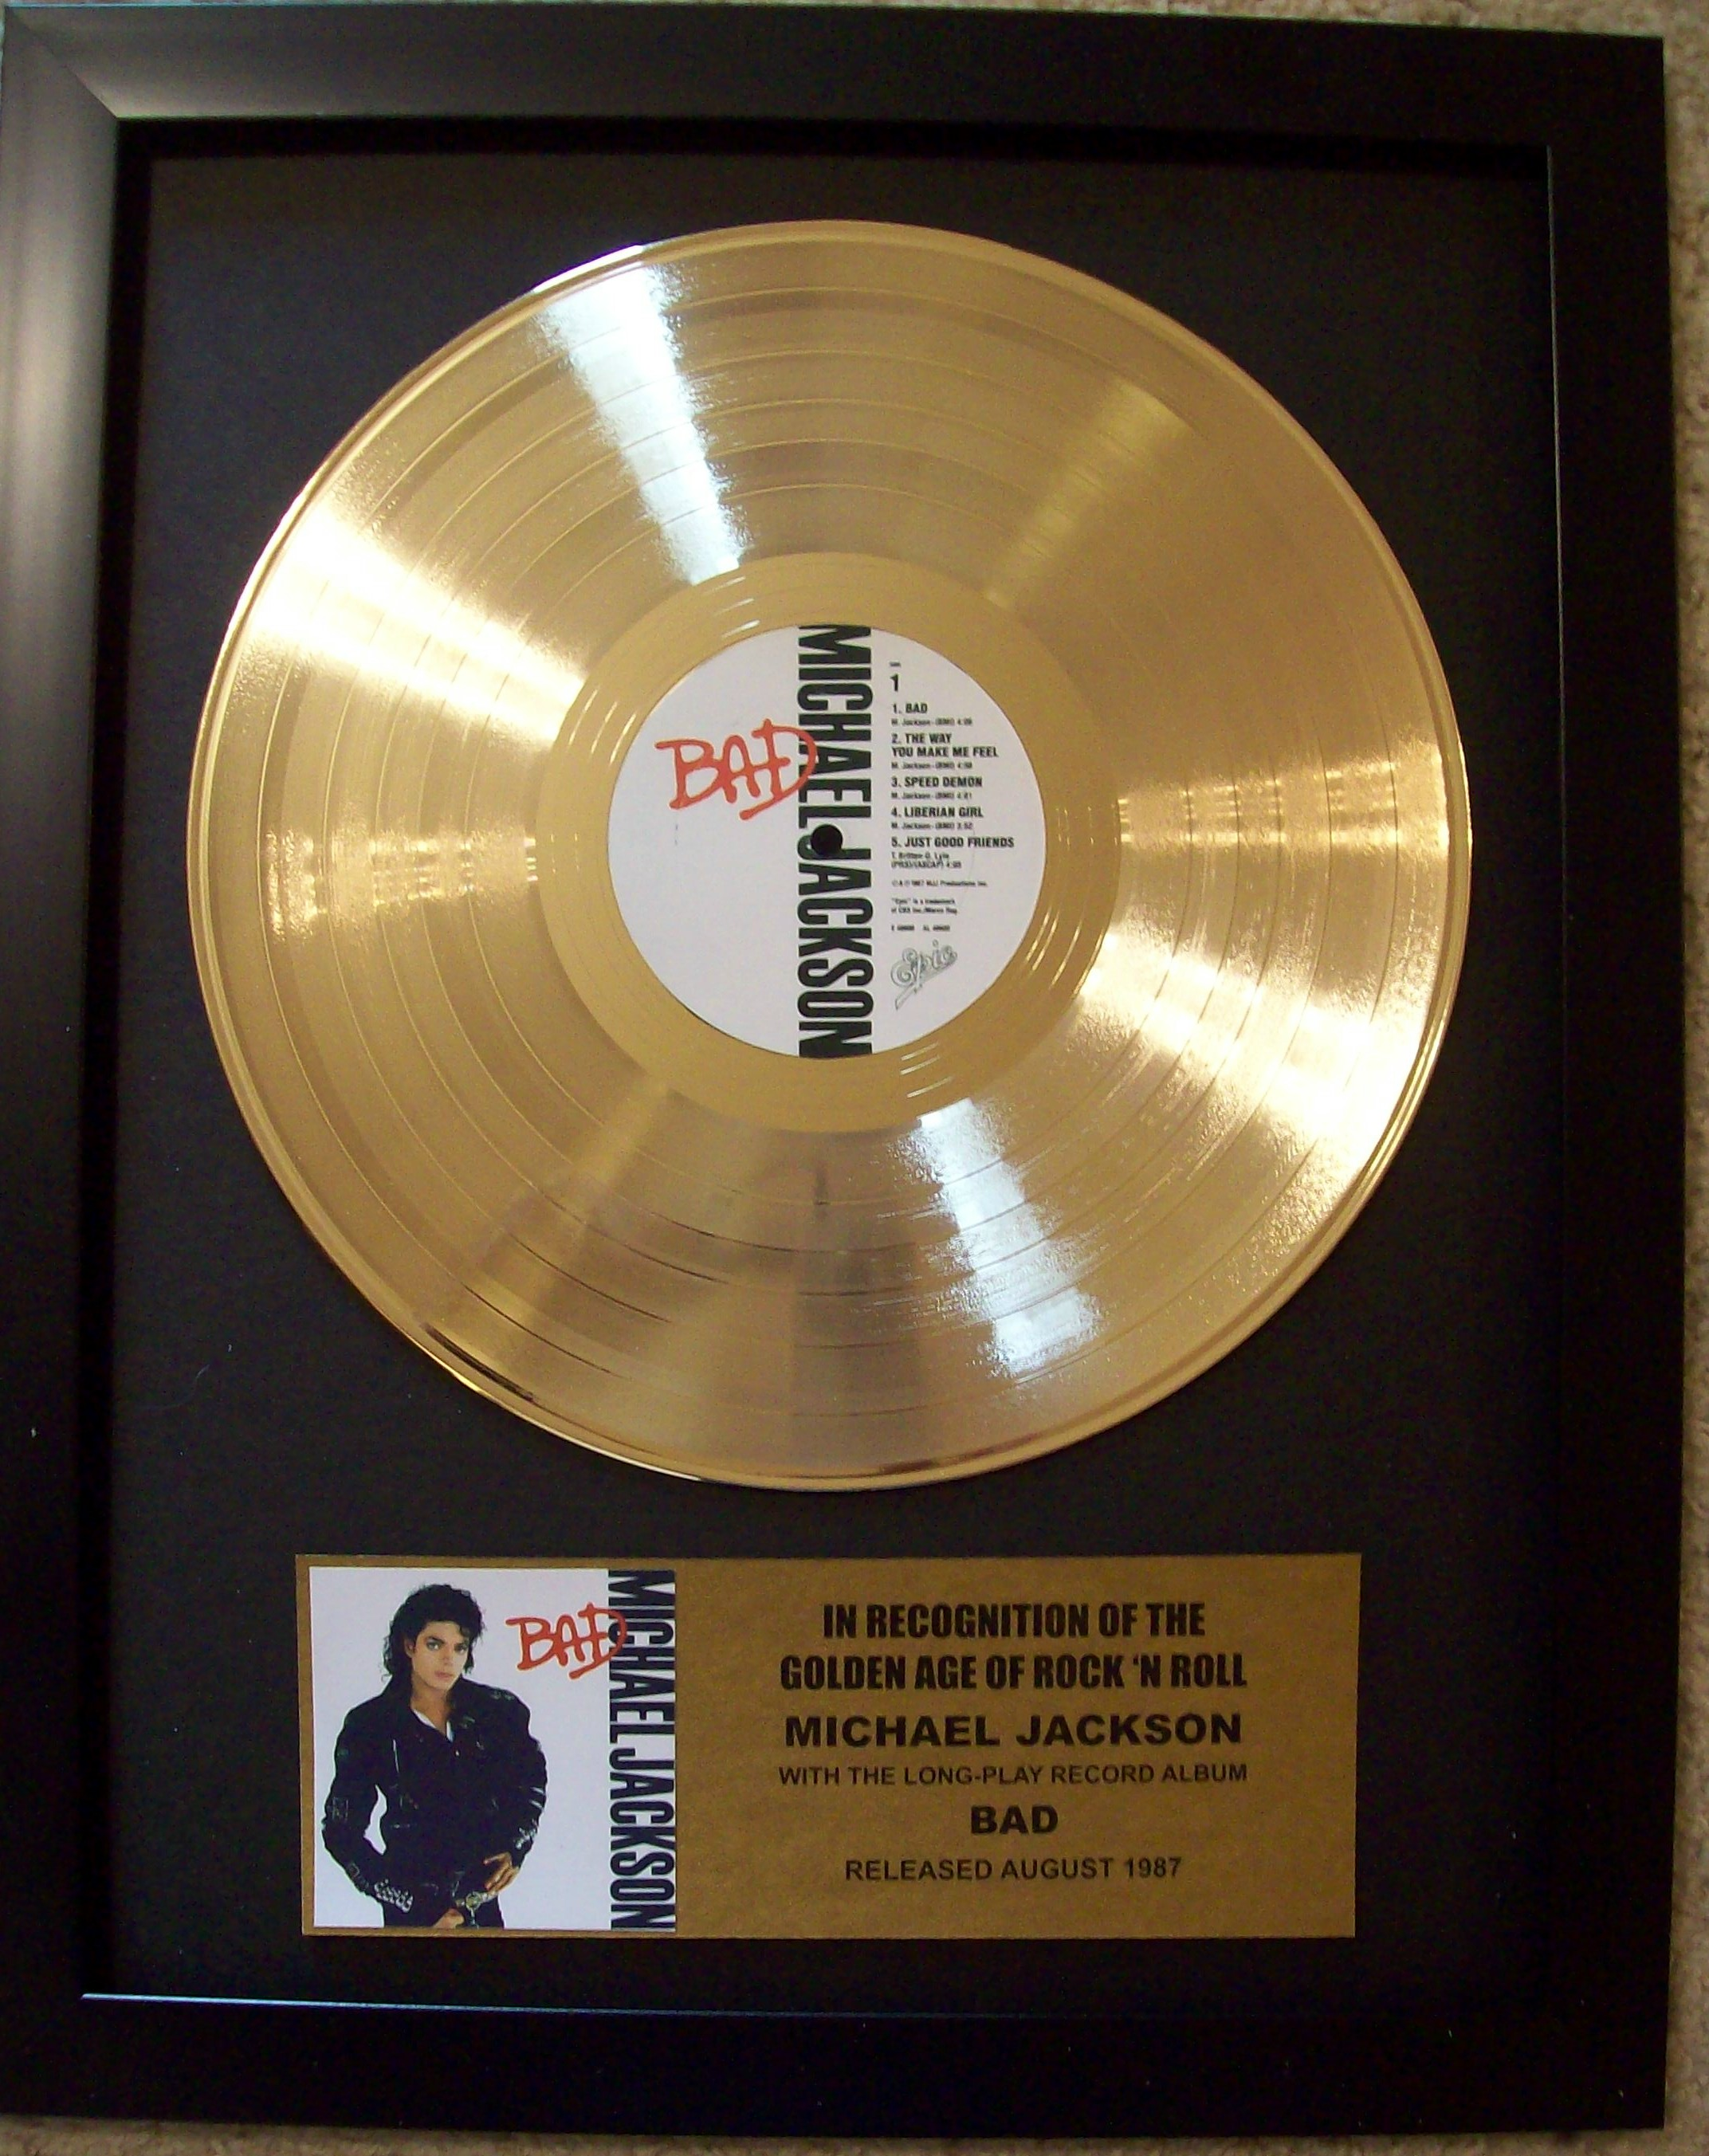 Image for Michael Jackson BAD Gold LP Record